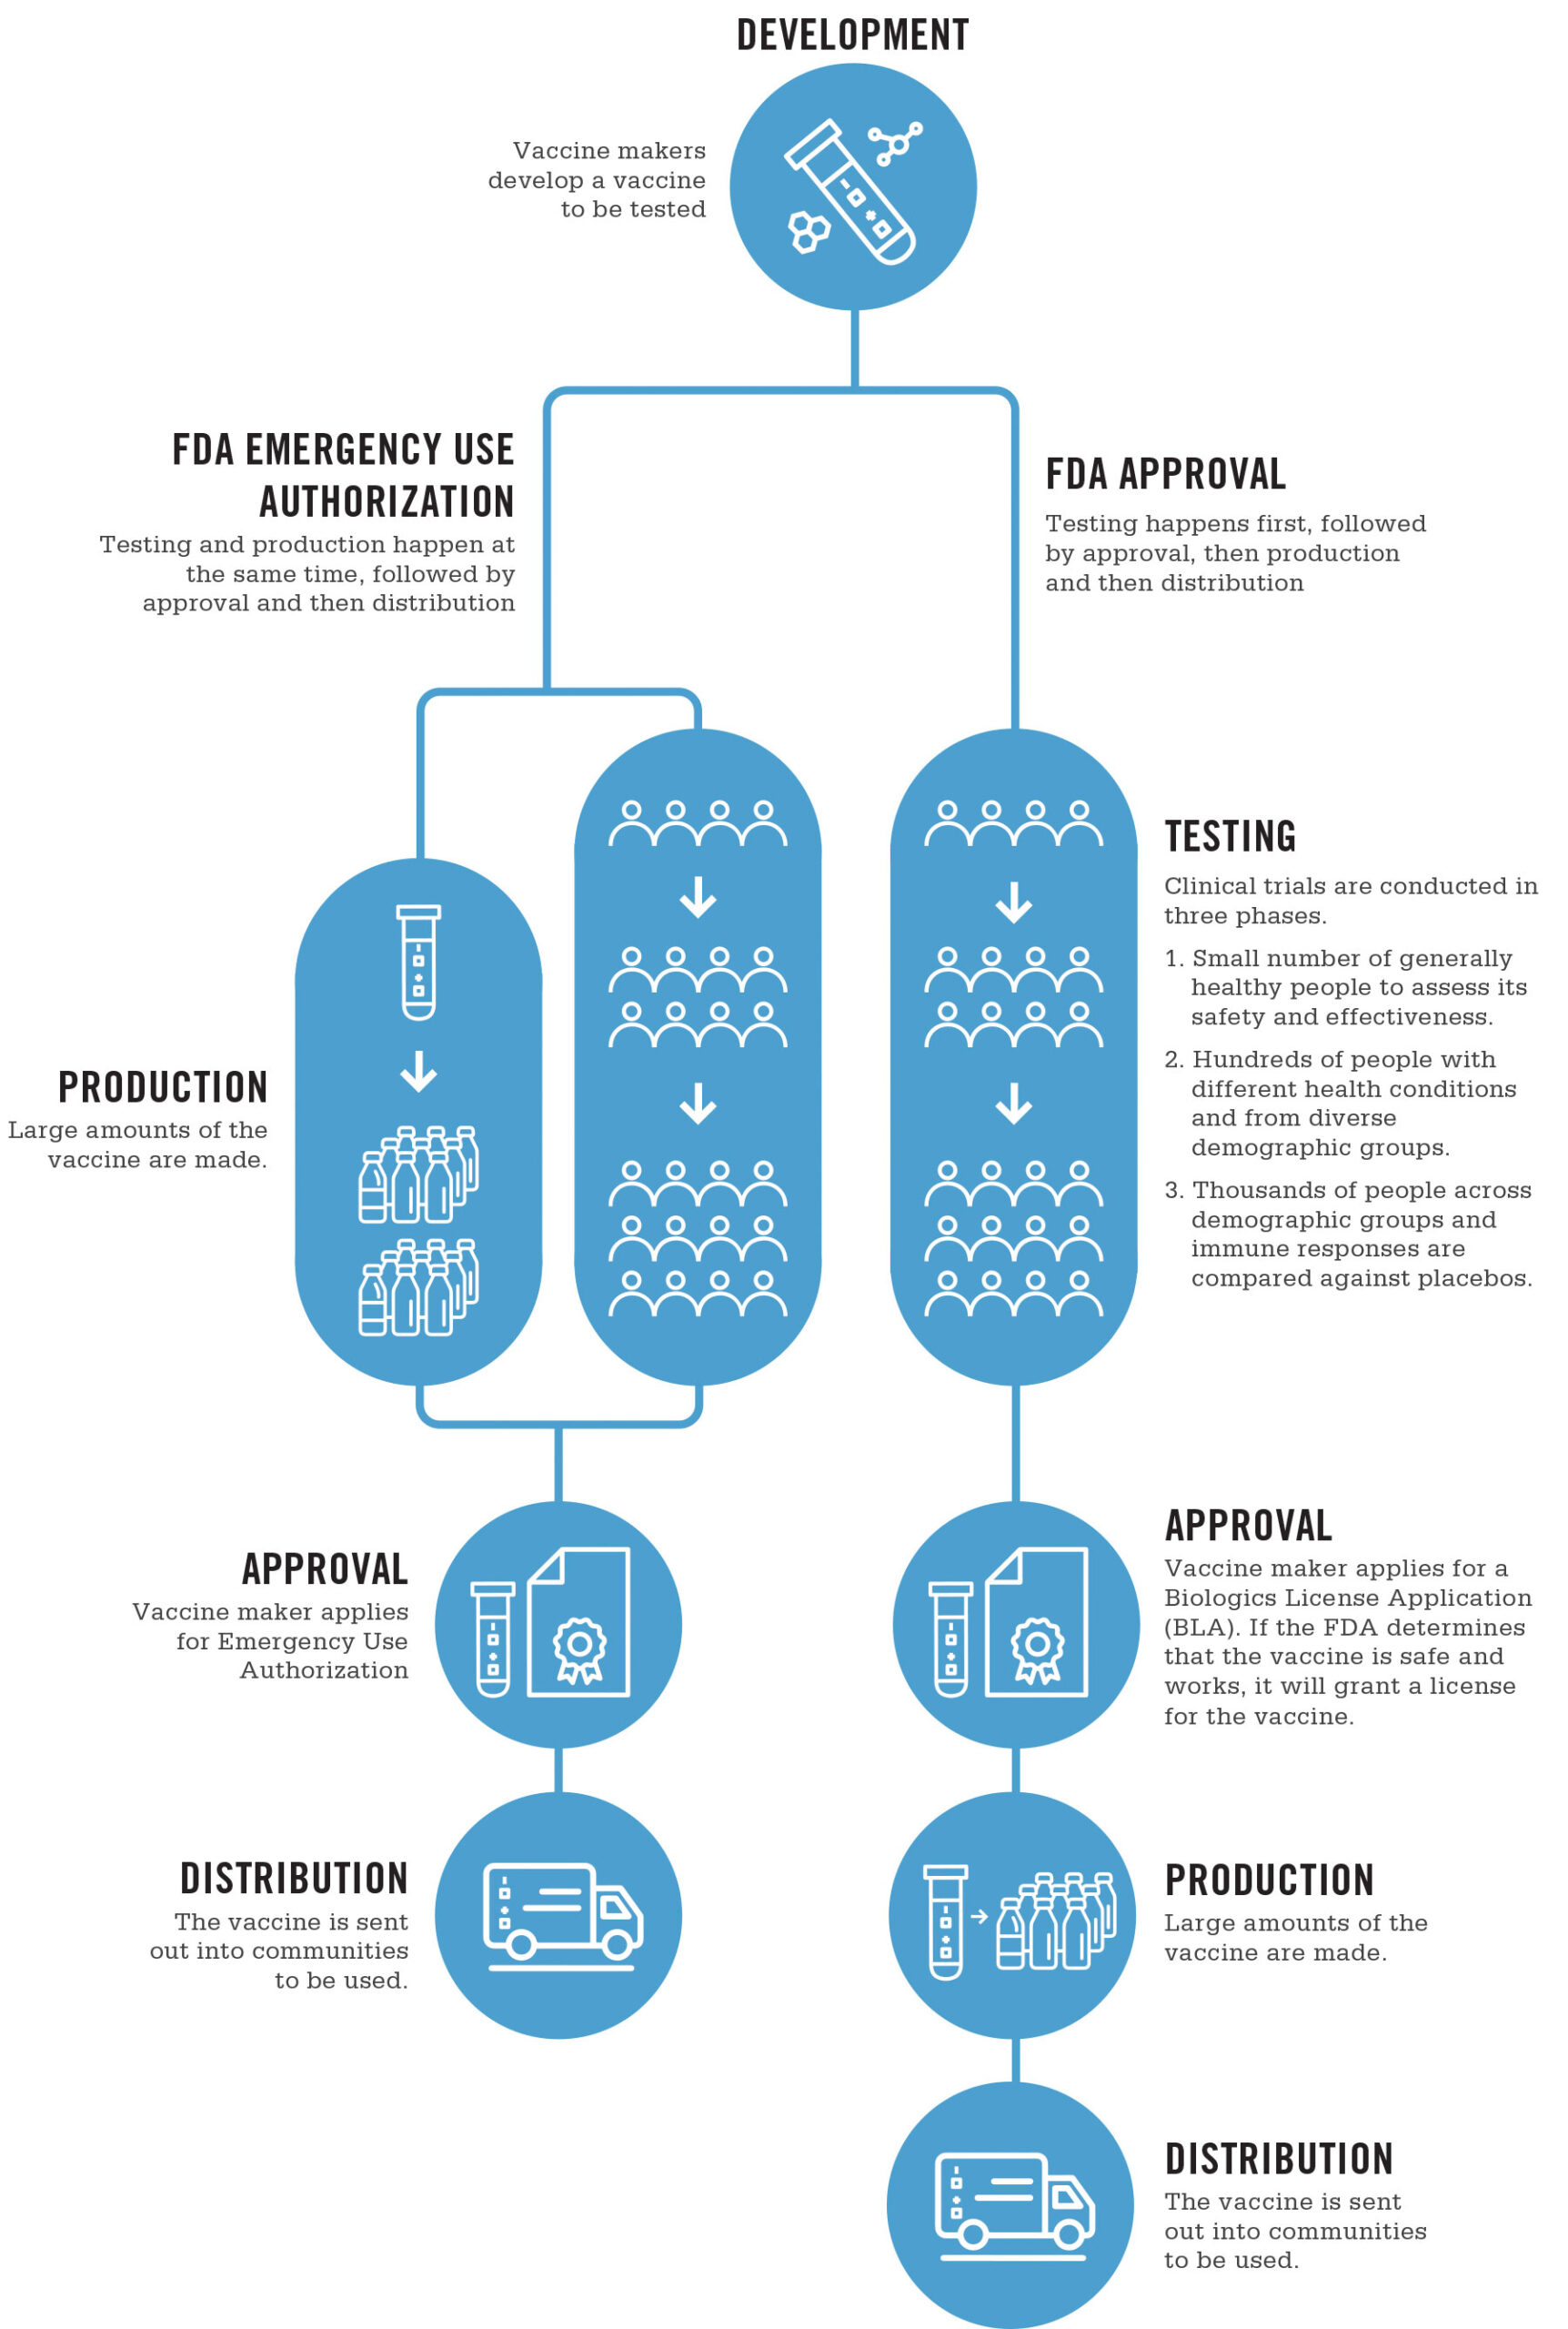 Infographic from UNC Healthcare showing the FDA vaccine approval process, and how it differs under an 'Emergency Use Authorization'